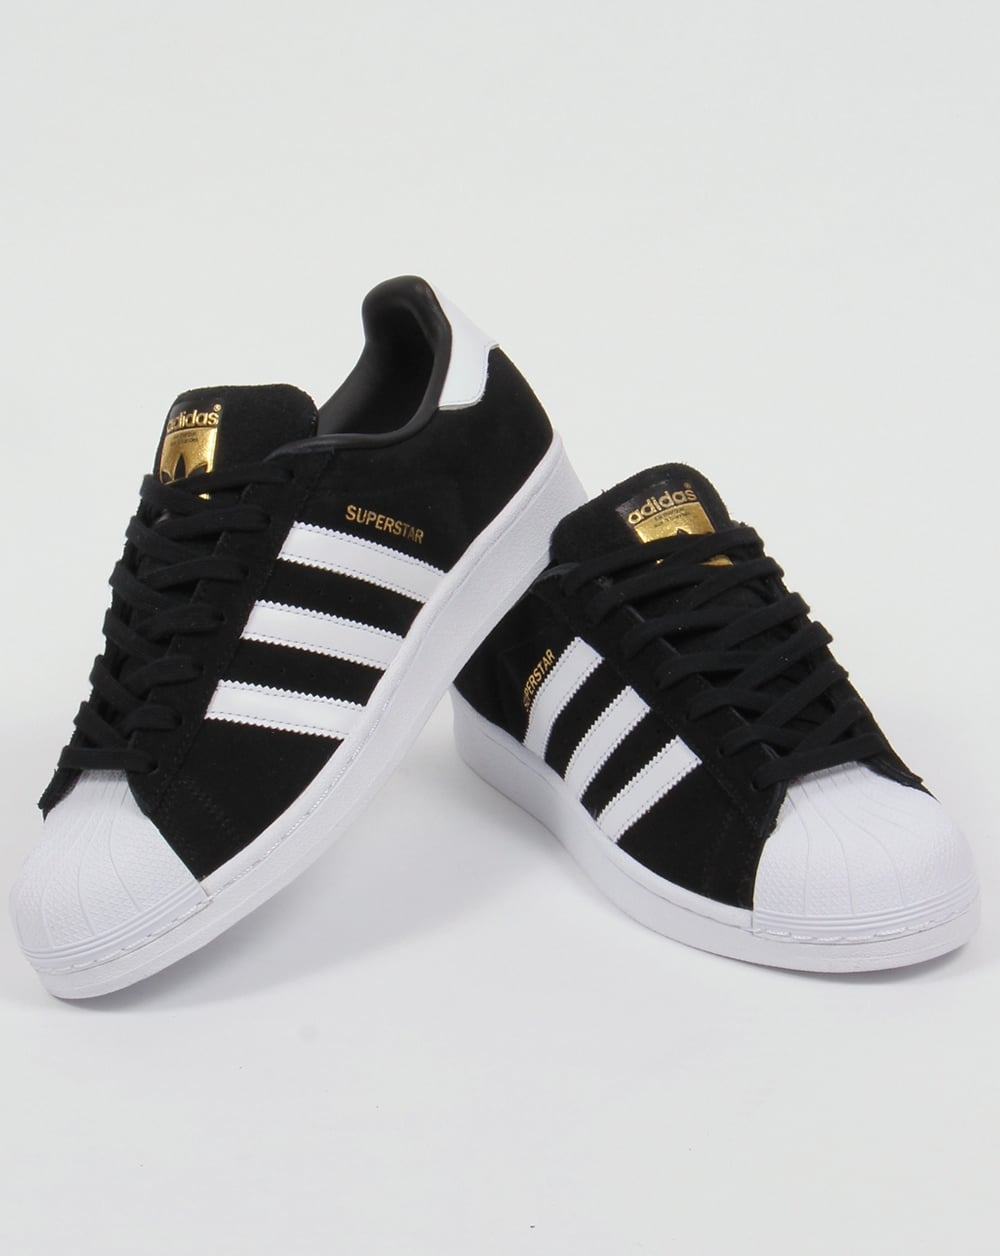 Adidas Superstar II White / Red #G09879, 09/08 High Top and